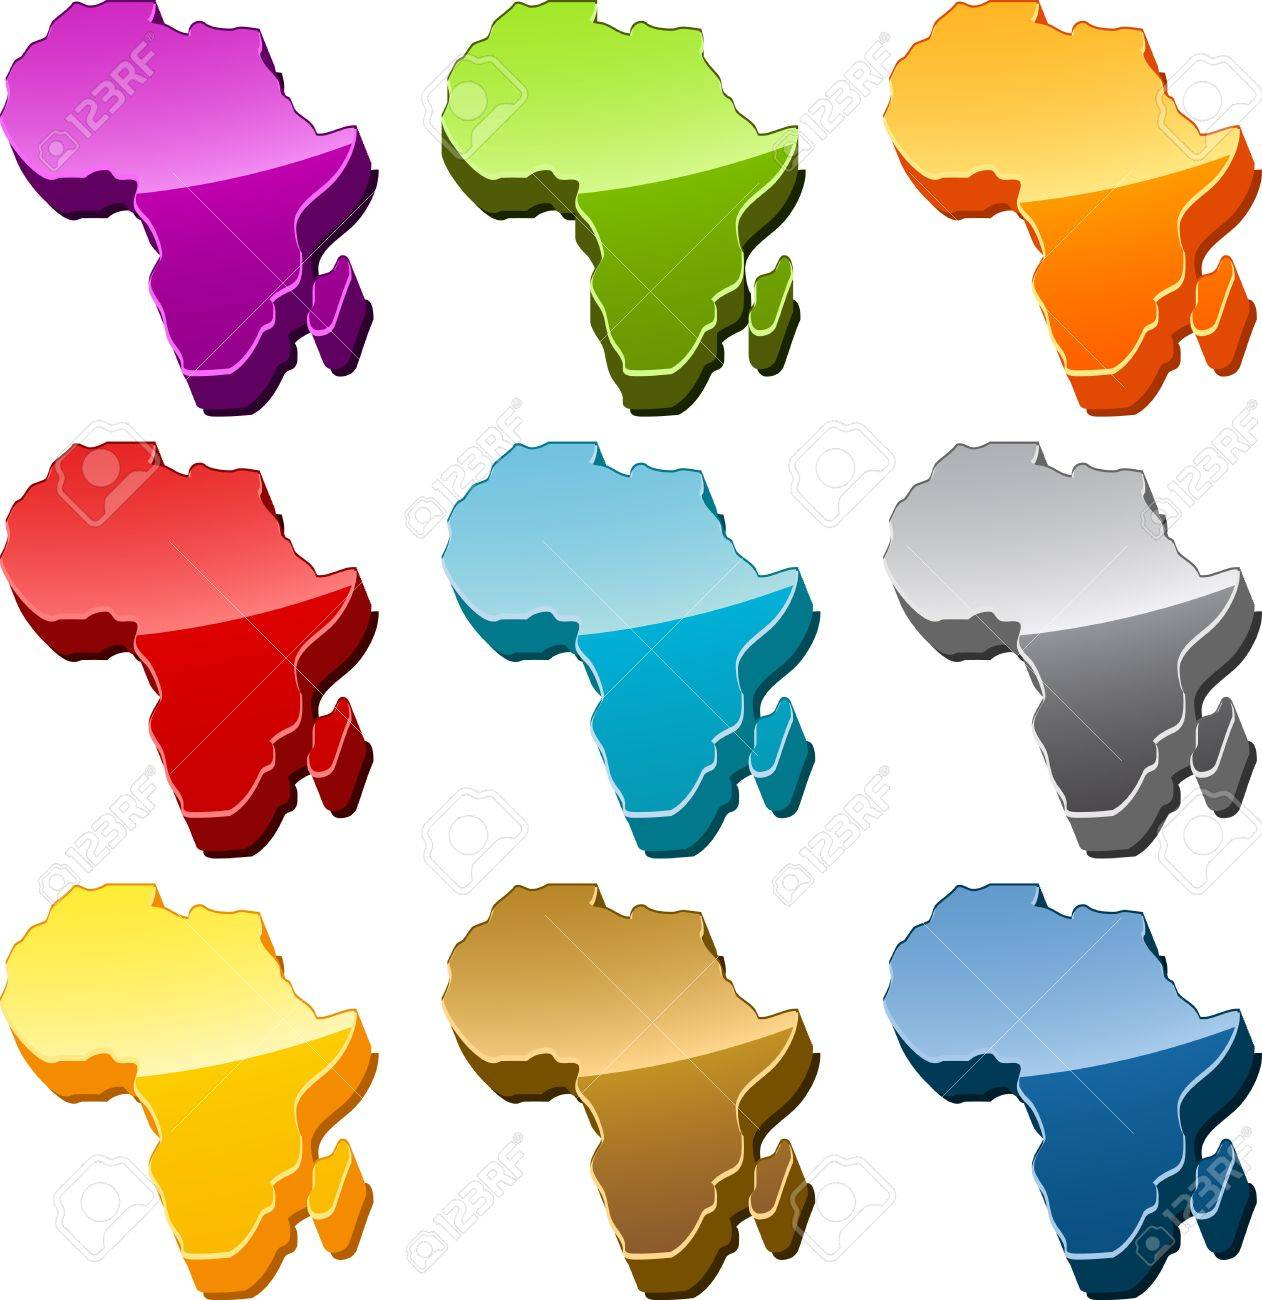 Africa continent map icon button multicolored illustration set Stock Photo - 9550032